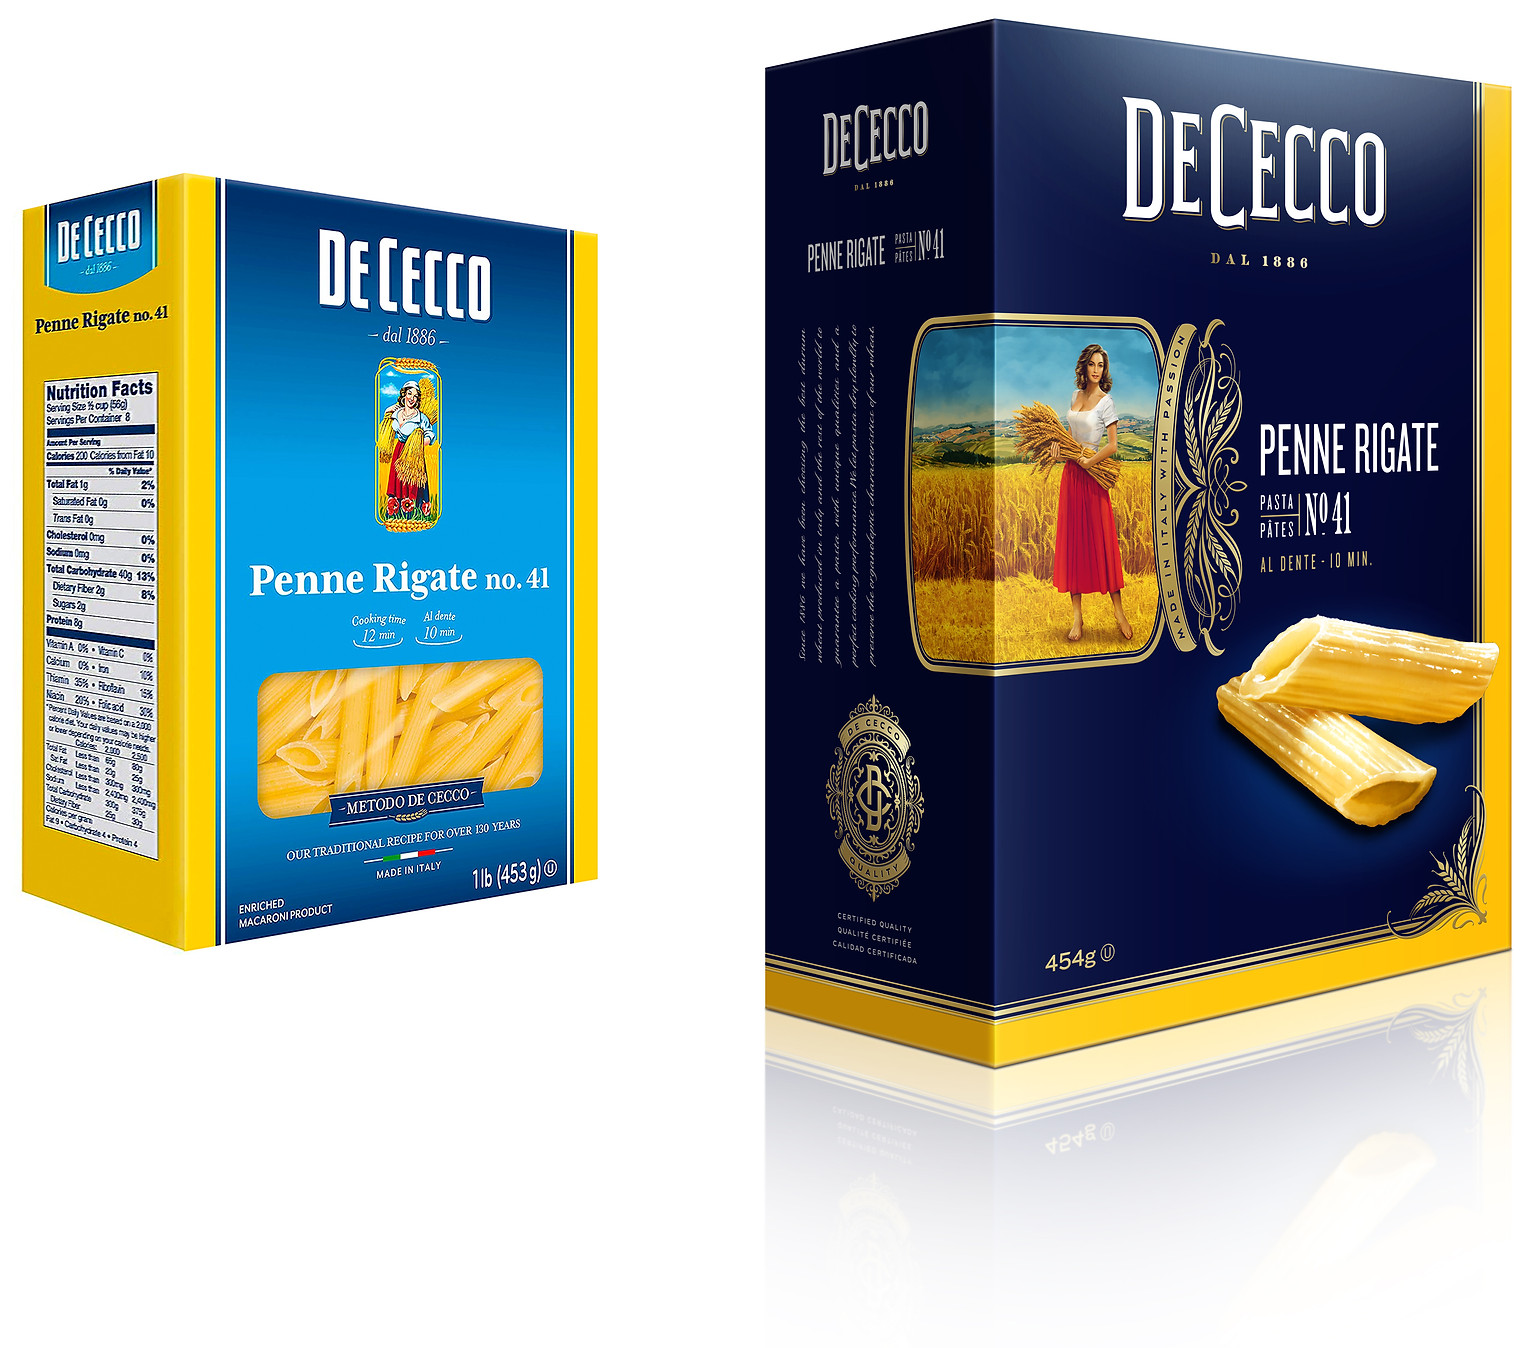 ∆DeCecco_Penne_Rigate_before_&_after